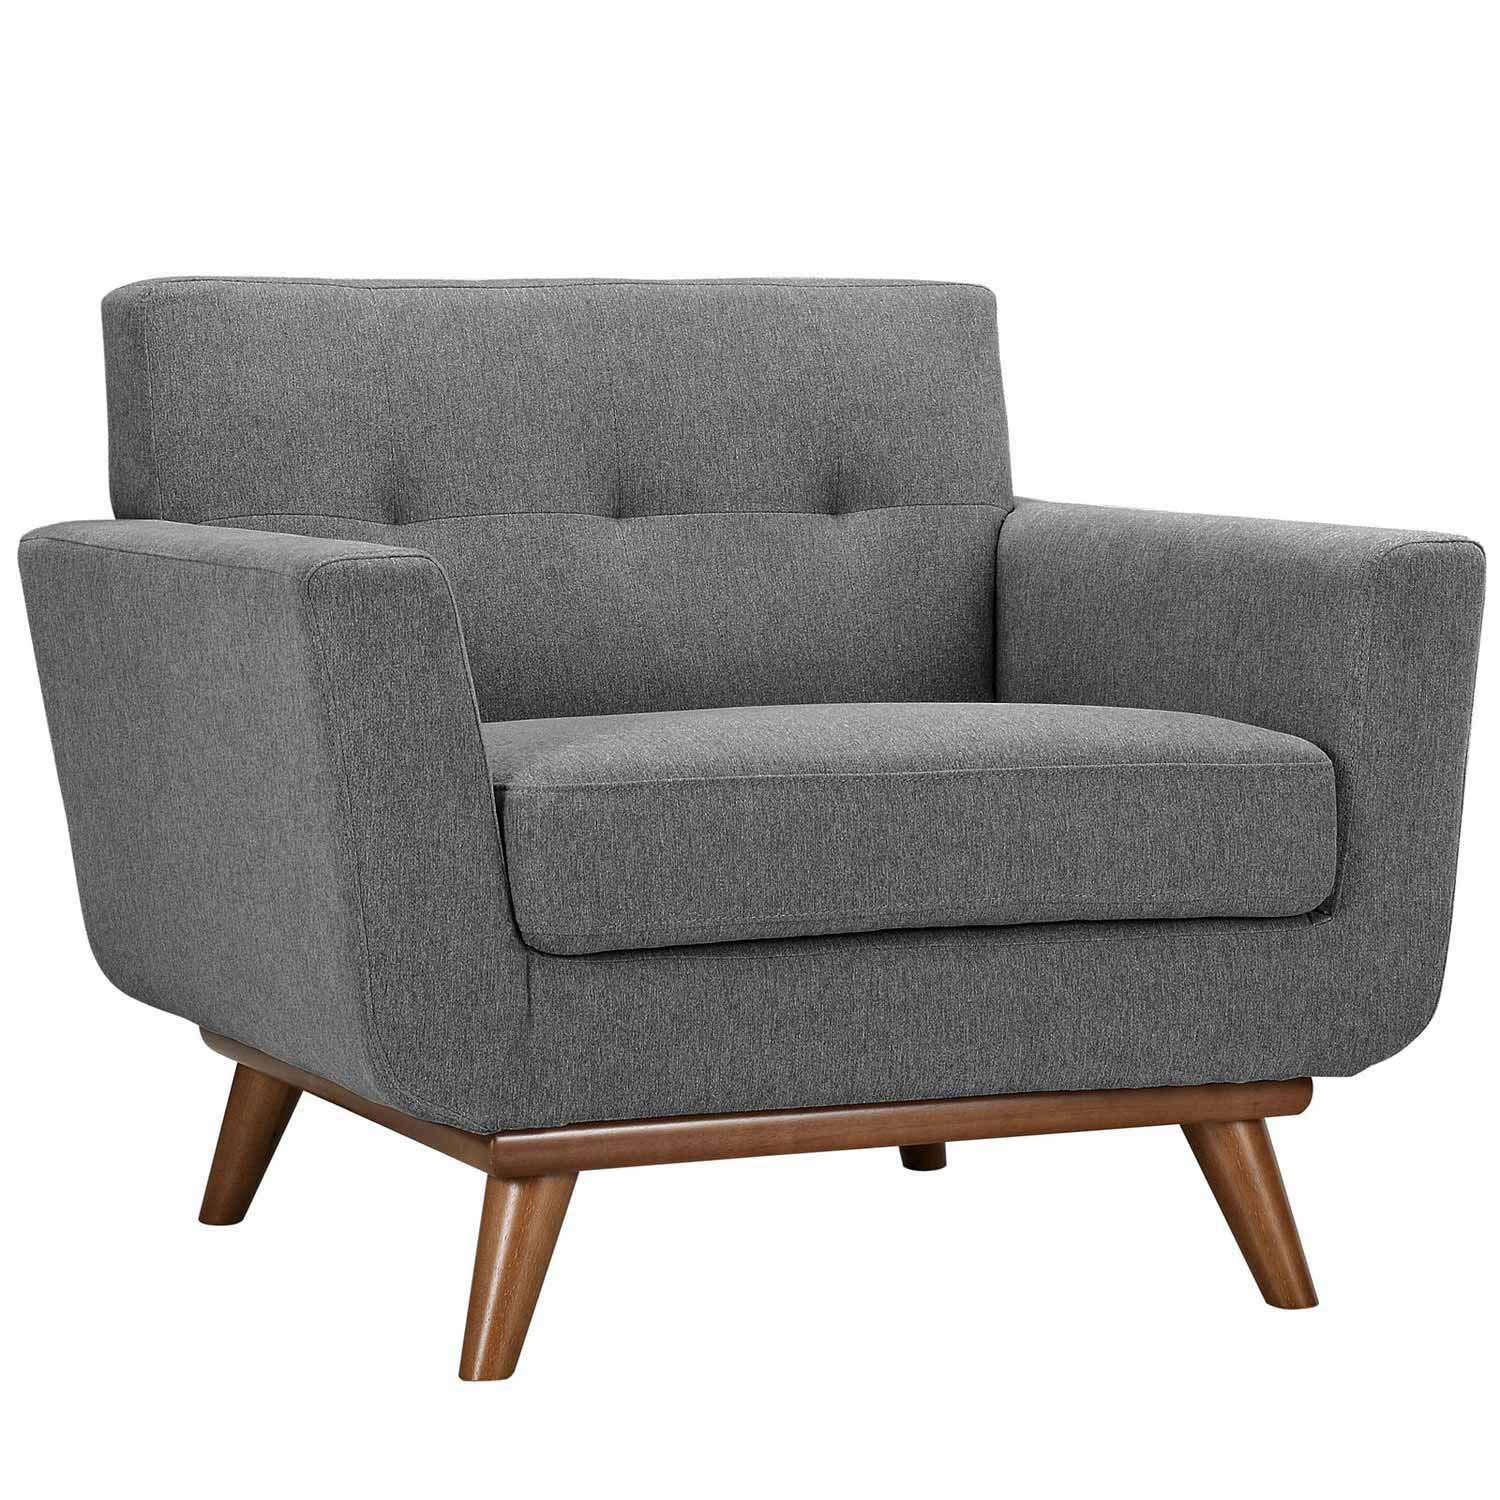 Modway Engage Armchair and Loveseat Set of 2 - Gray